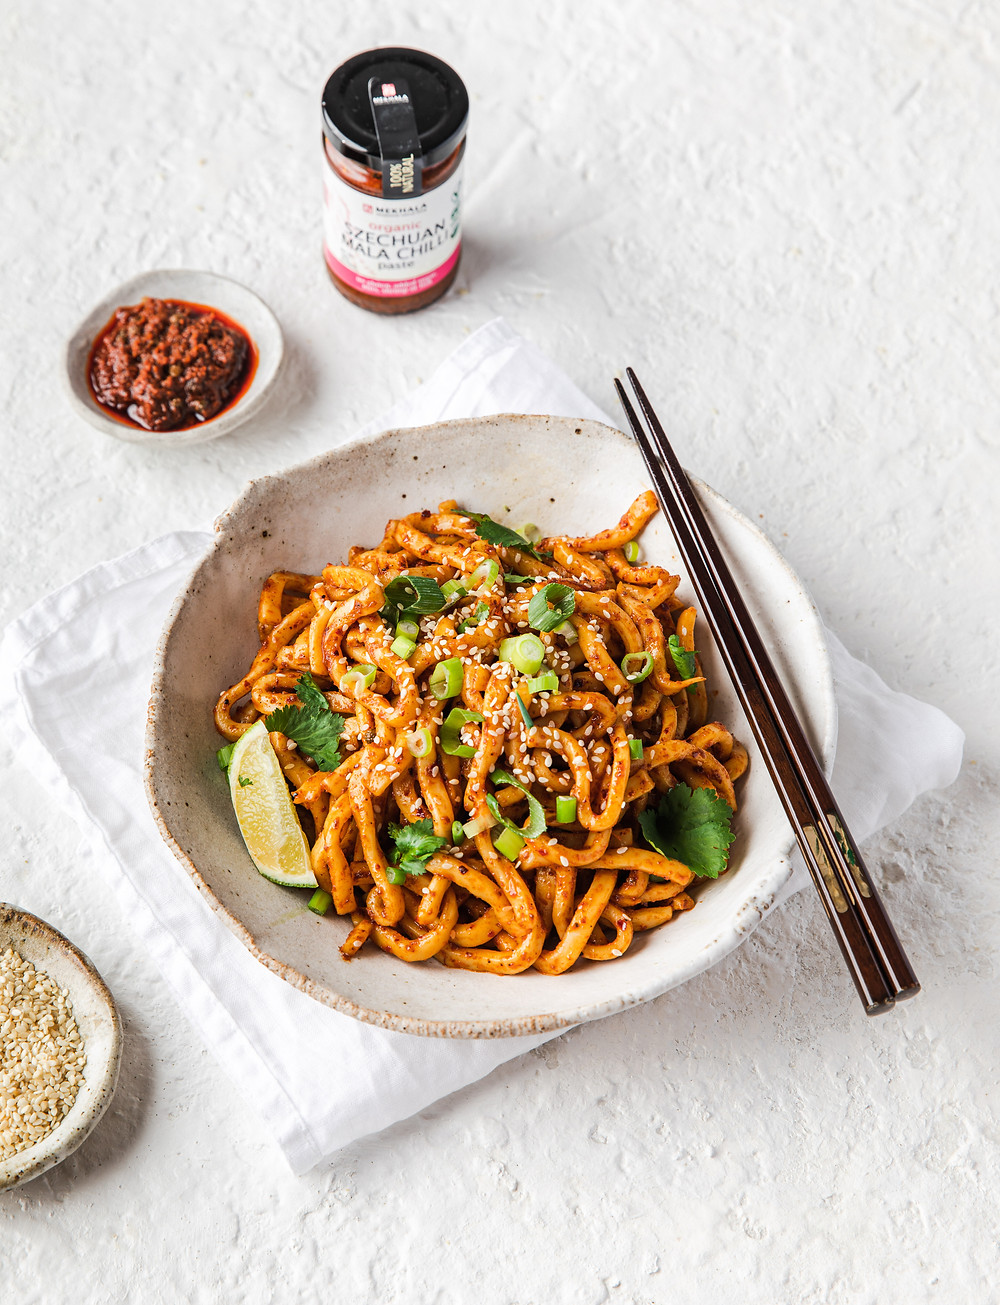 Biang biang udon noodles, organic, spicy szechuan spicy mala chilli paste, vegan, gluten free